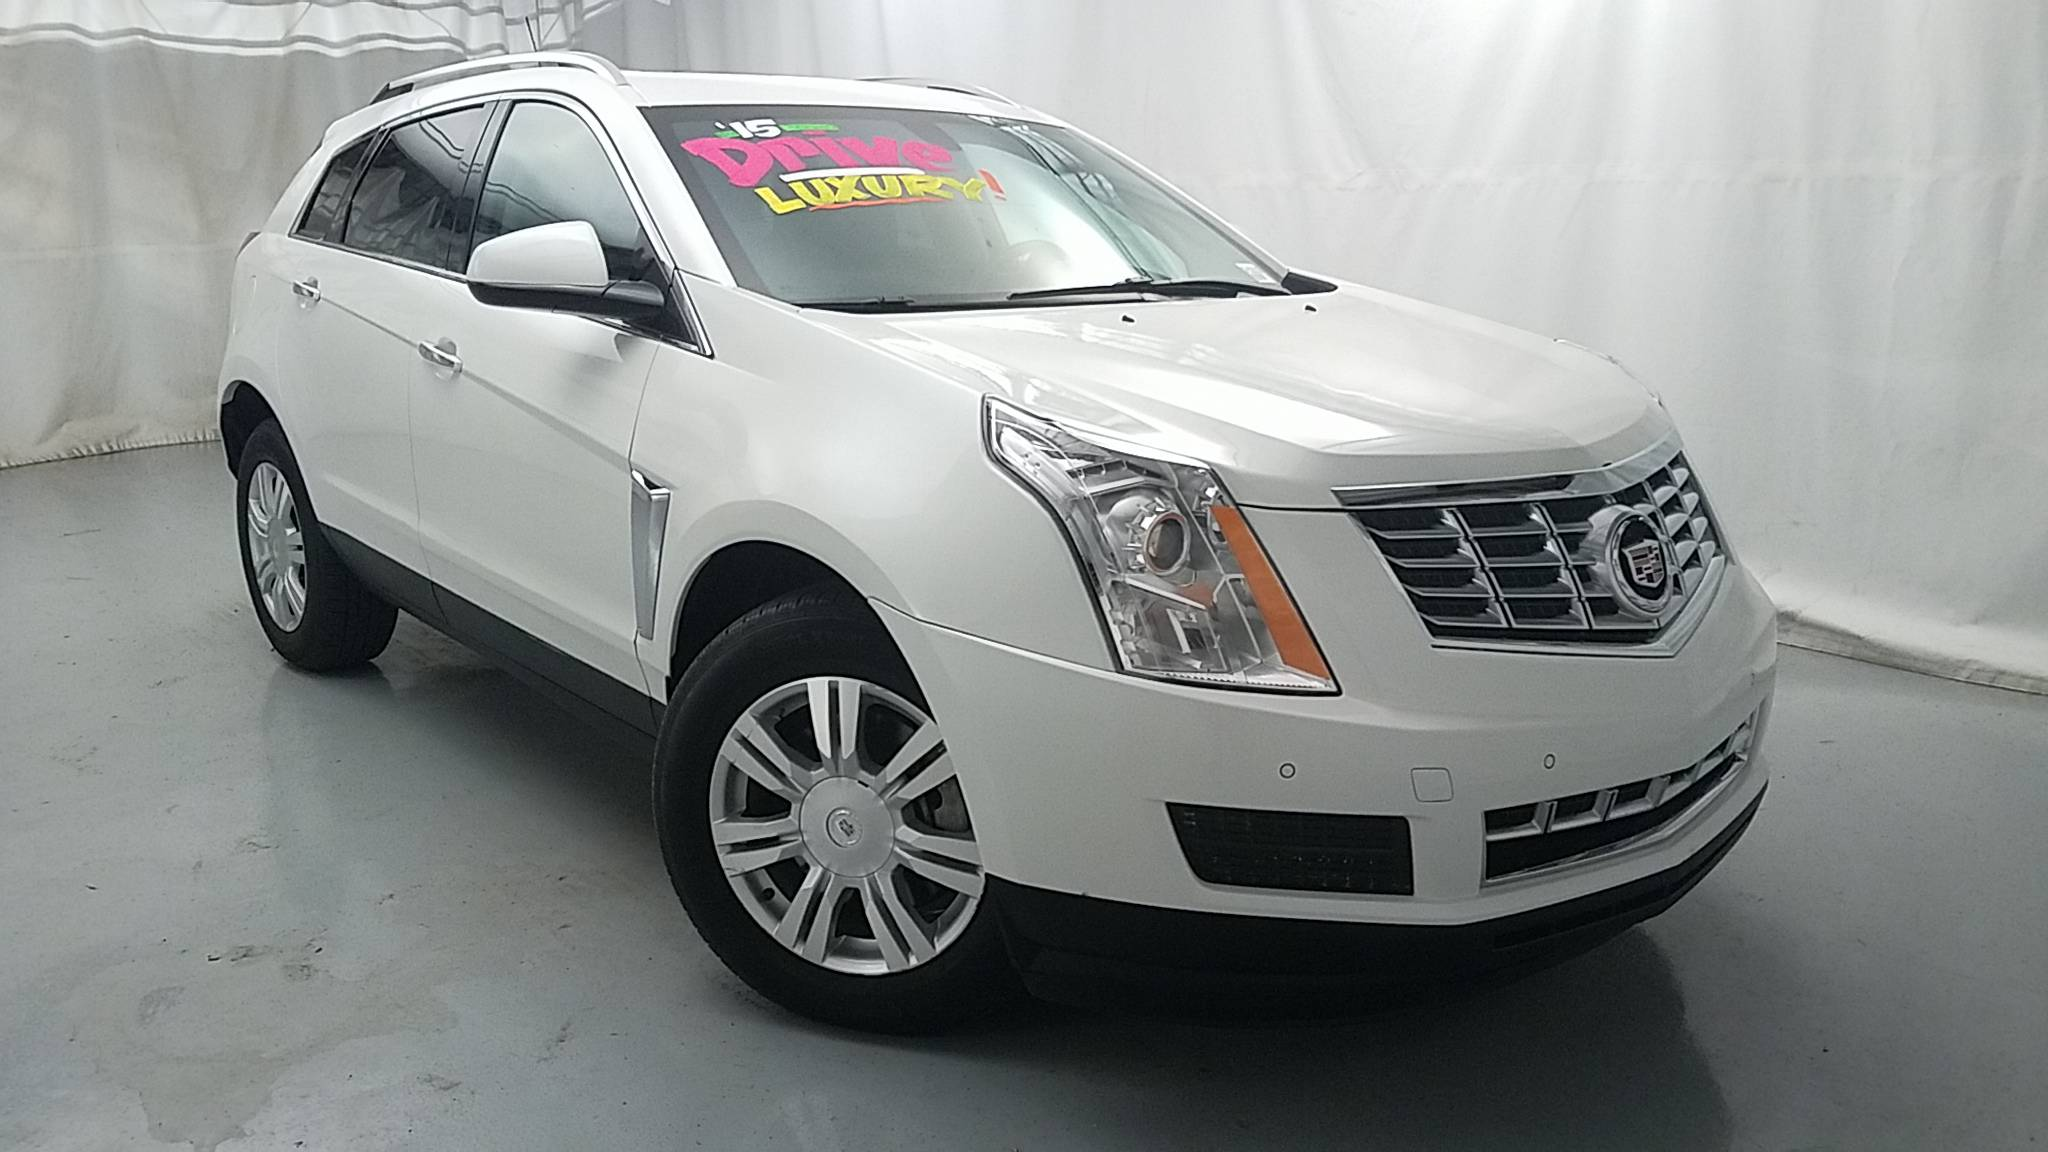 2015 Escalade Ext Vehicles For Sale In Hammond La Serving New